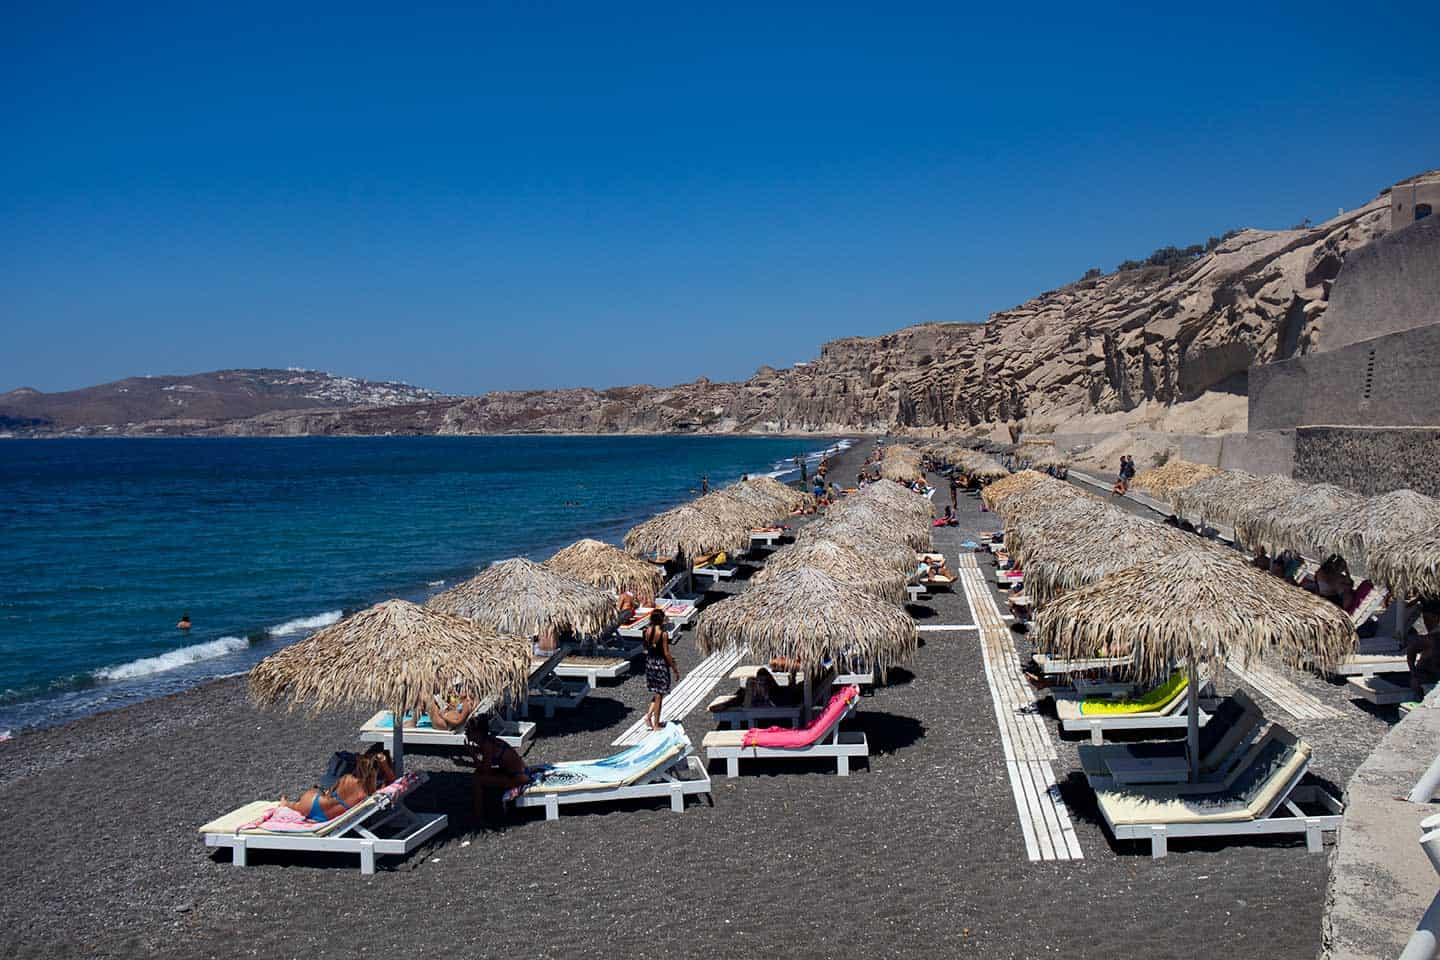 Image of sun shades and loungers on Vlychada beach in Santorini